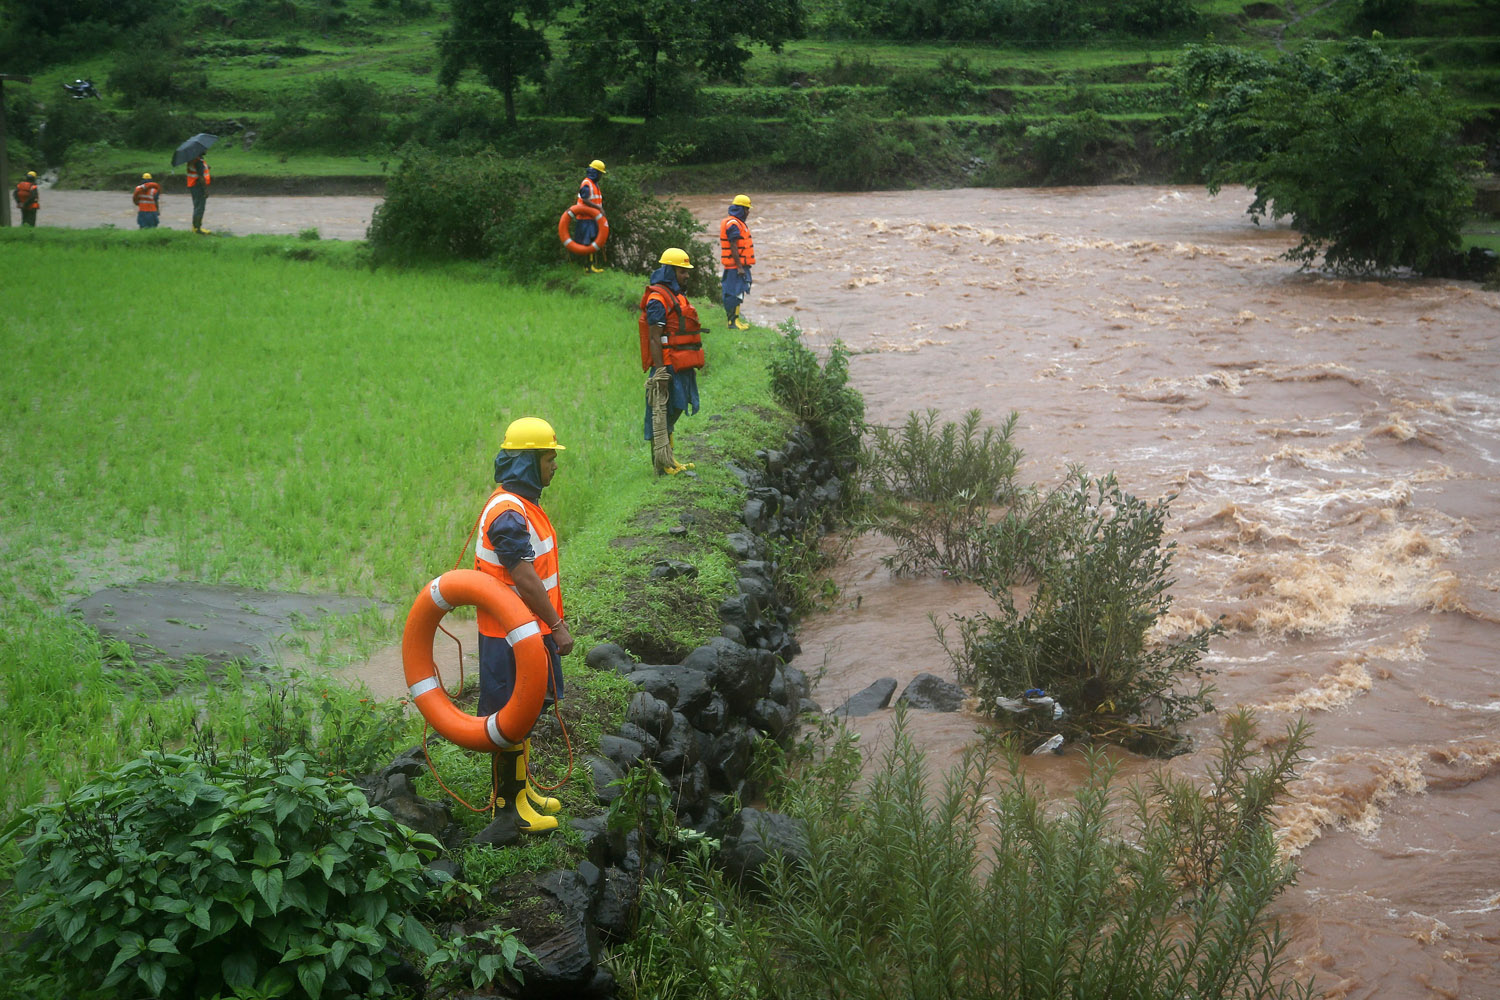 Jul. 31, 2014. An Indian National Disaster Response Force (NDRF) team looks for dead bodies in the river after a landslide in Malin village, Pune district, Maharashtra, India.